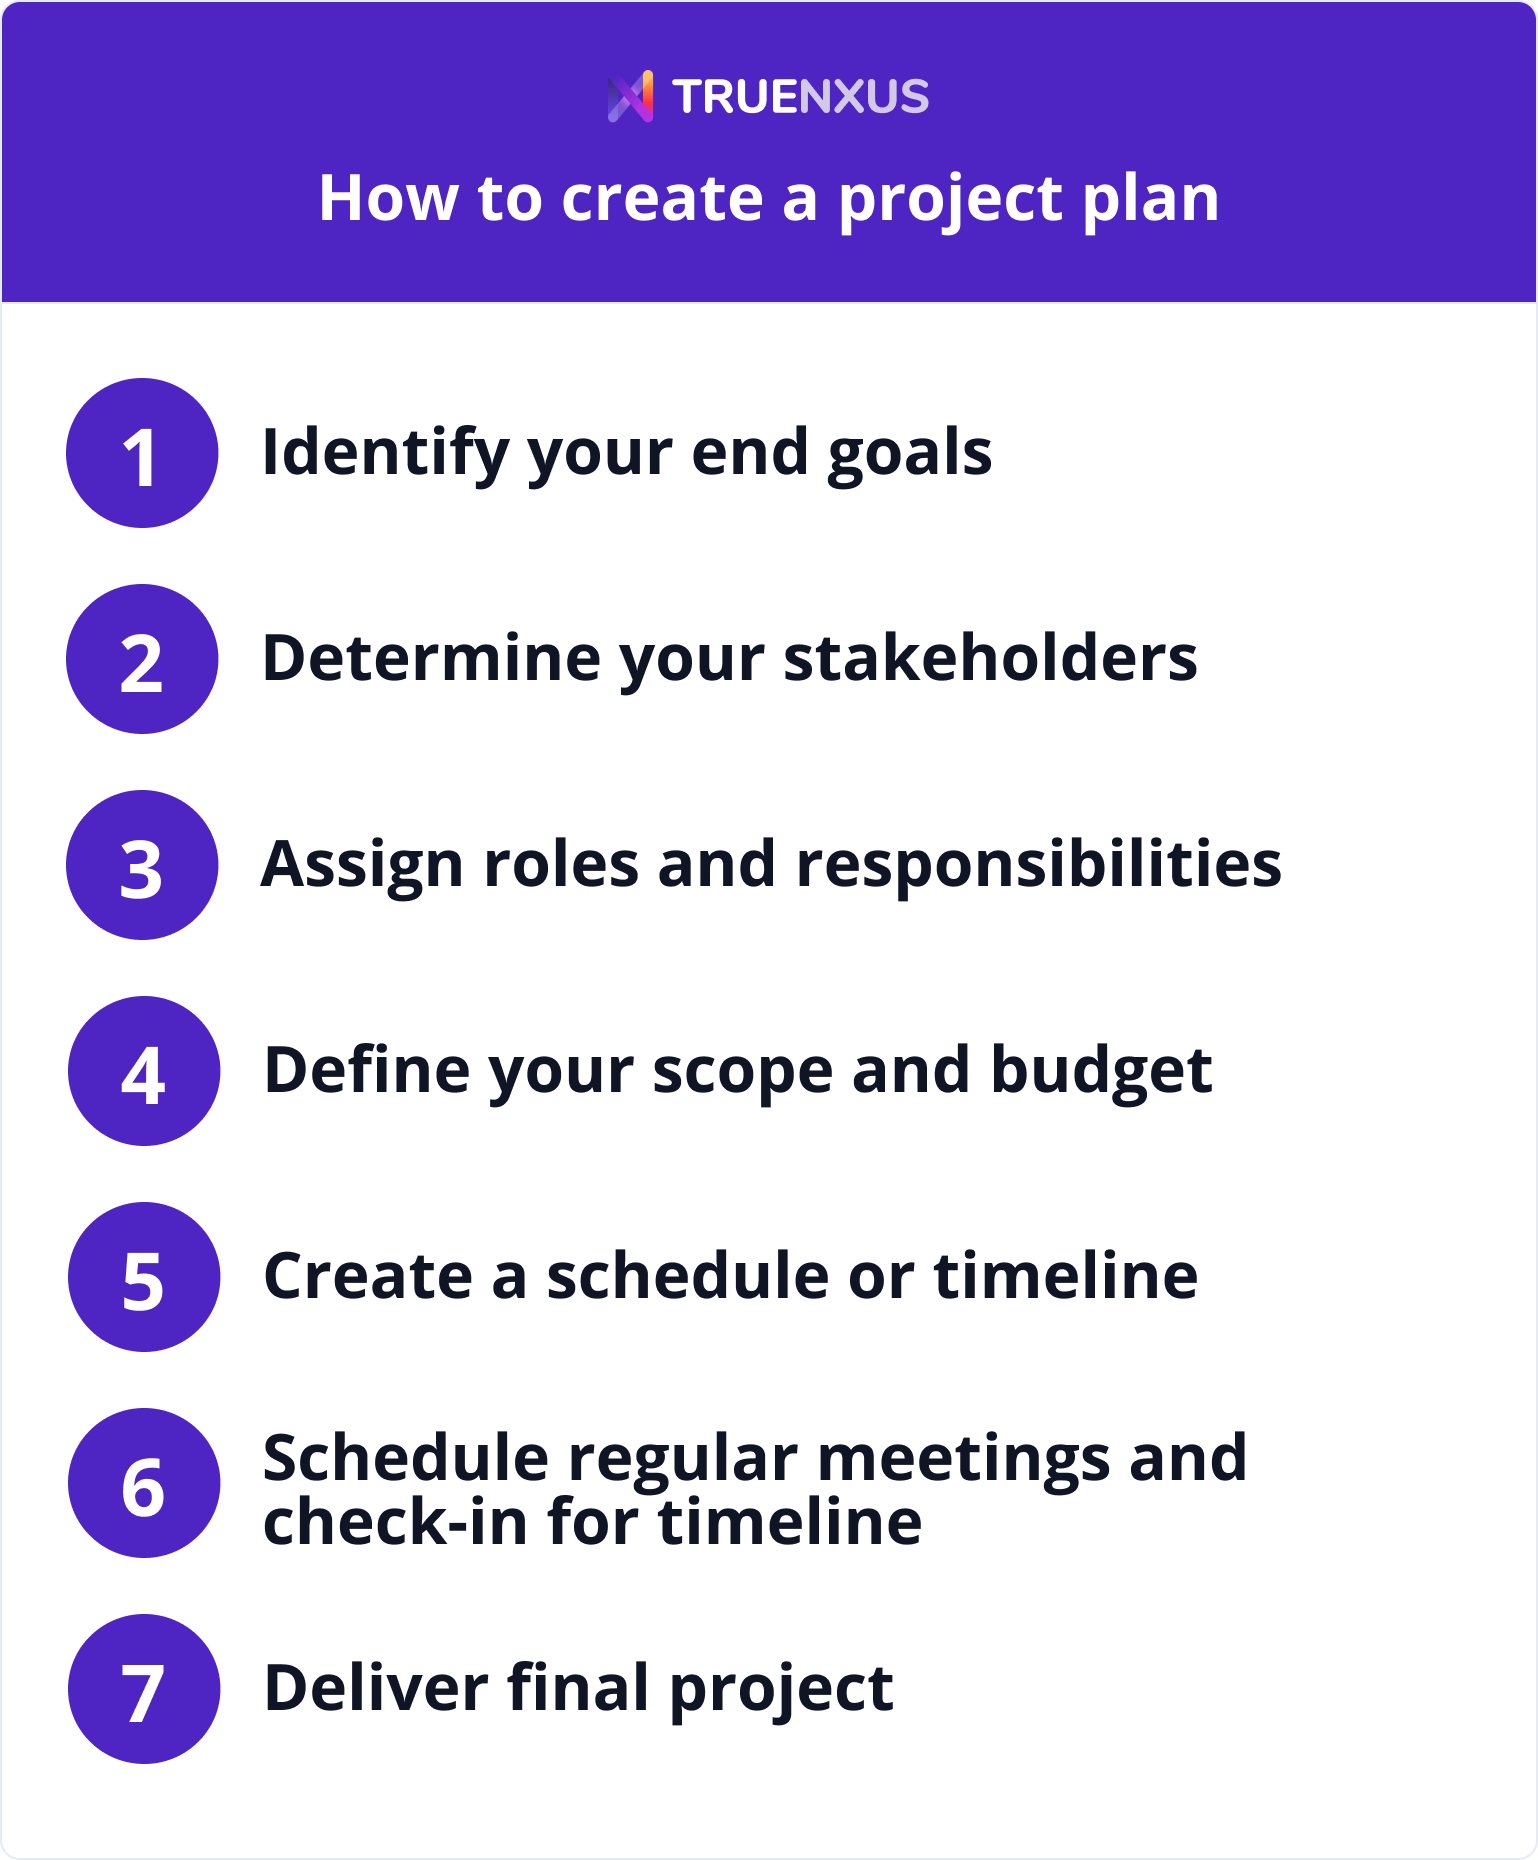 How to create a project plan